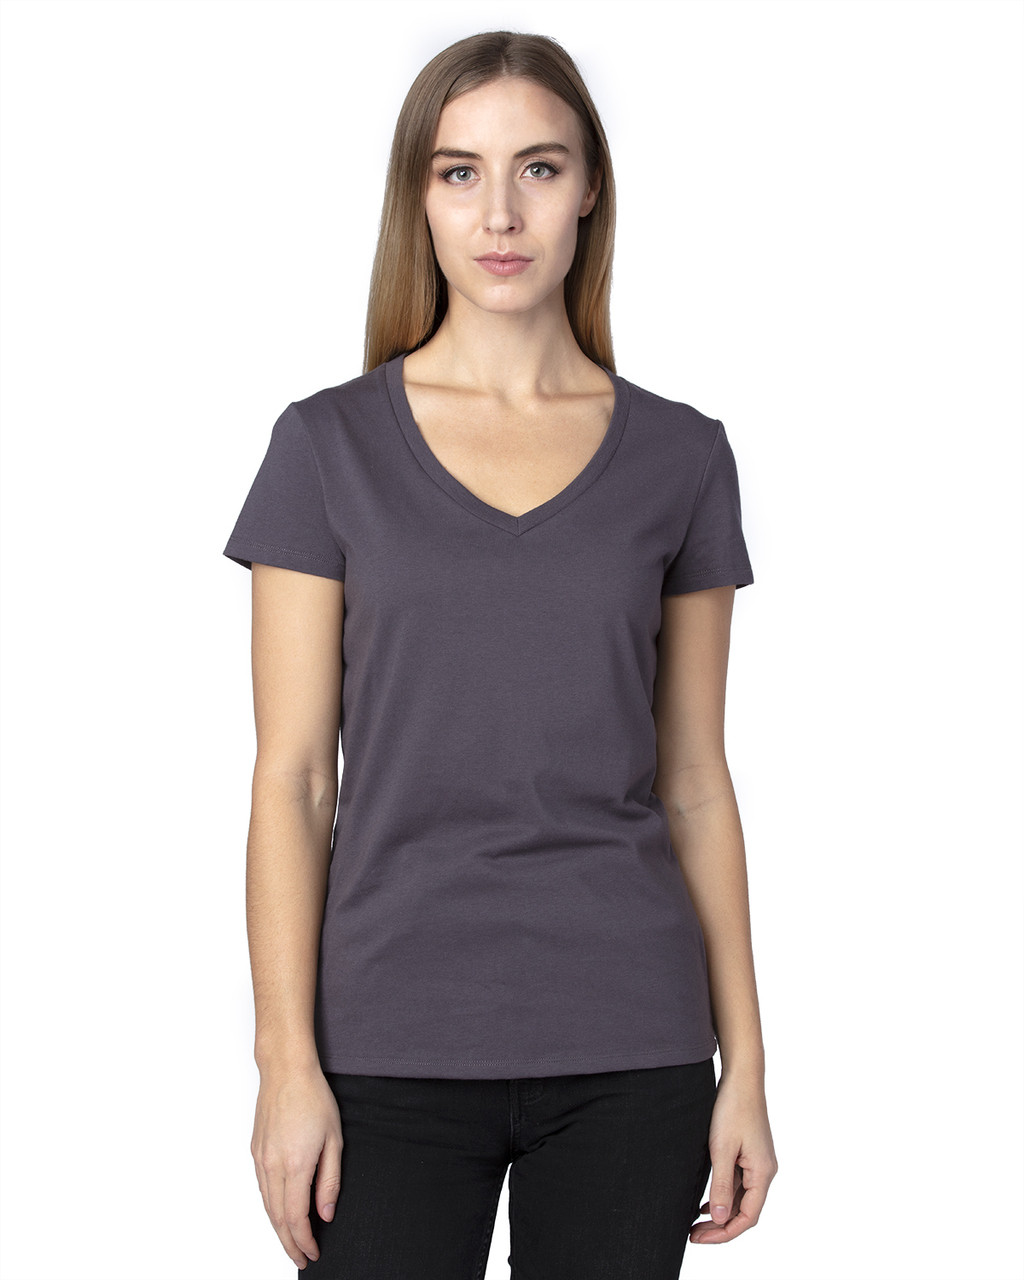 Graphite - 200RV Threadfast Ladies' Ultimate Short-Sleeve V-Neck T-Shirt | BlankClothing.ca